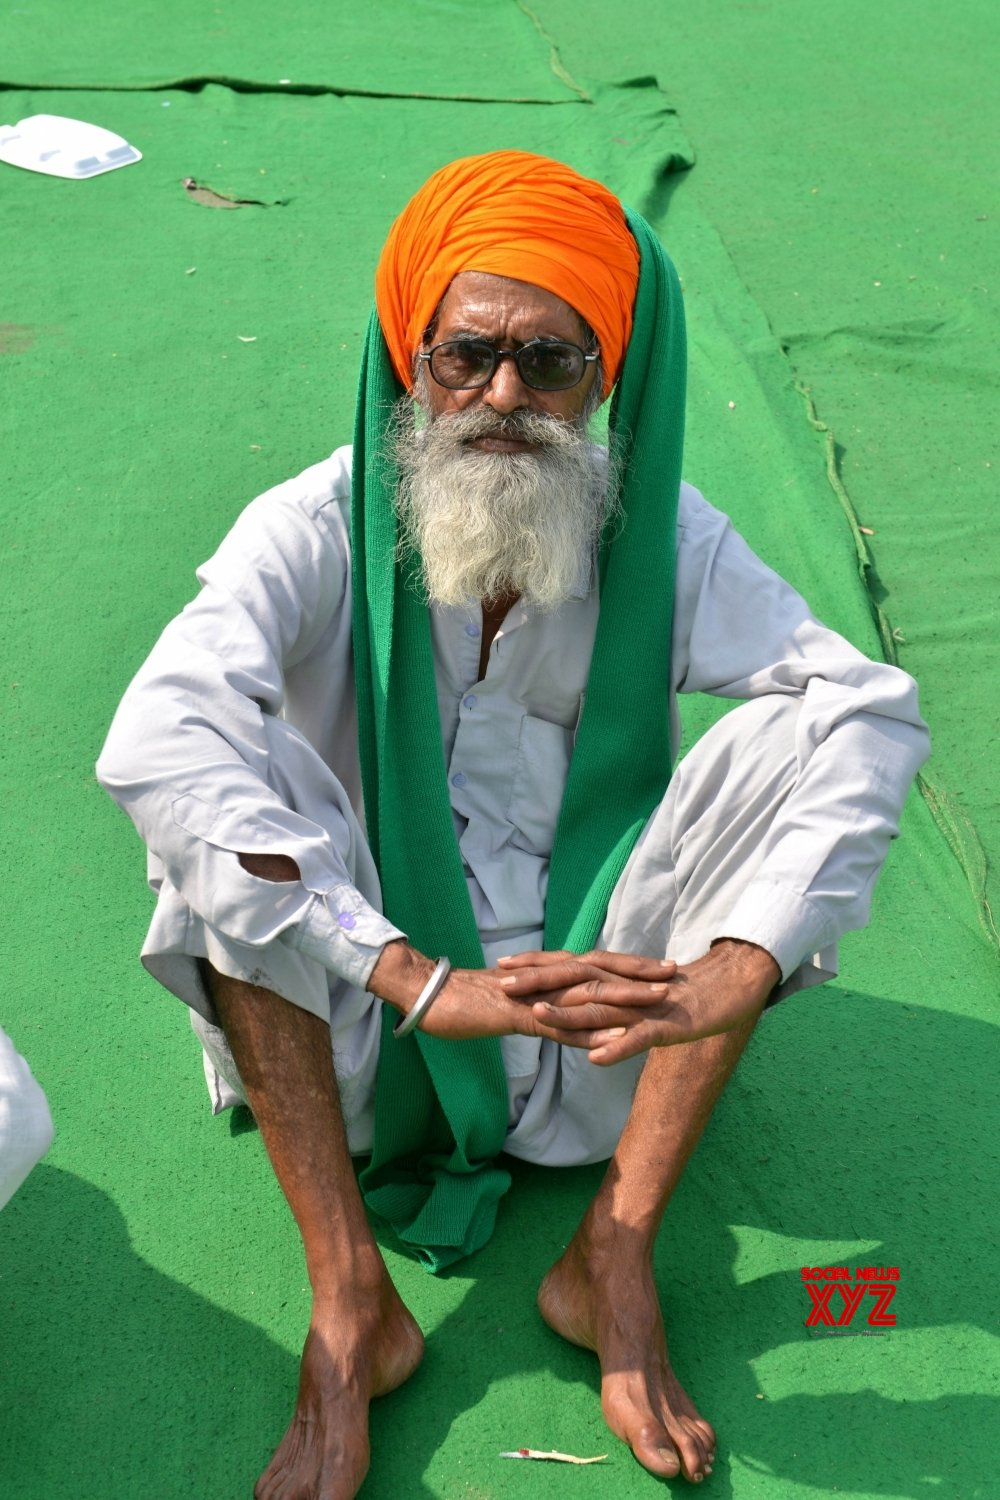 New Delhi: Farmers sitting at the demonstration site during the ongoing farmer protest against the new farm laws at Ghazipur Border, in New Delhi on Monday 22nd February 2021. #Gallery